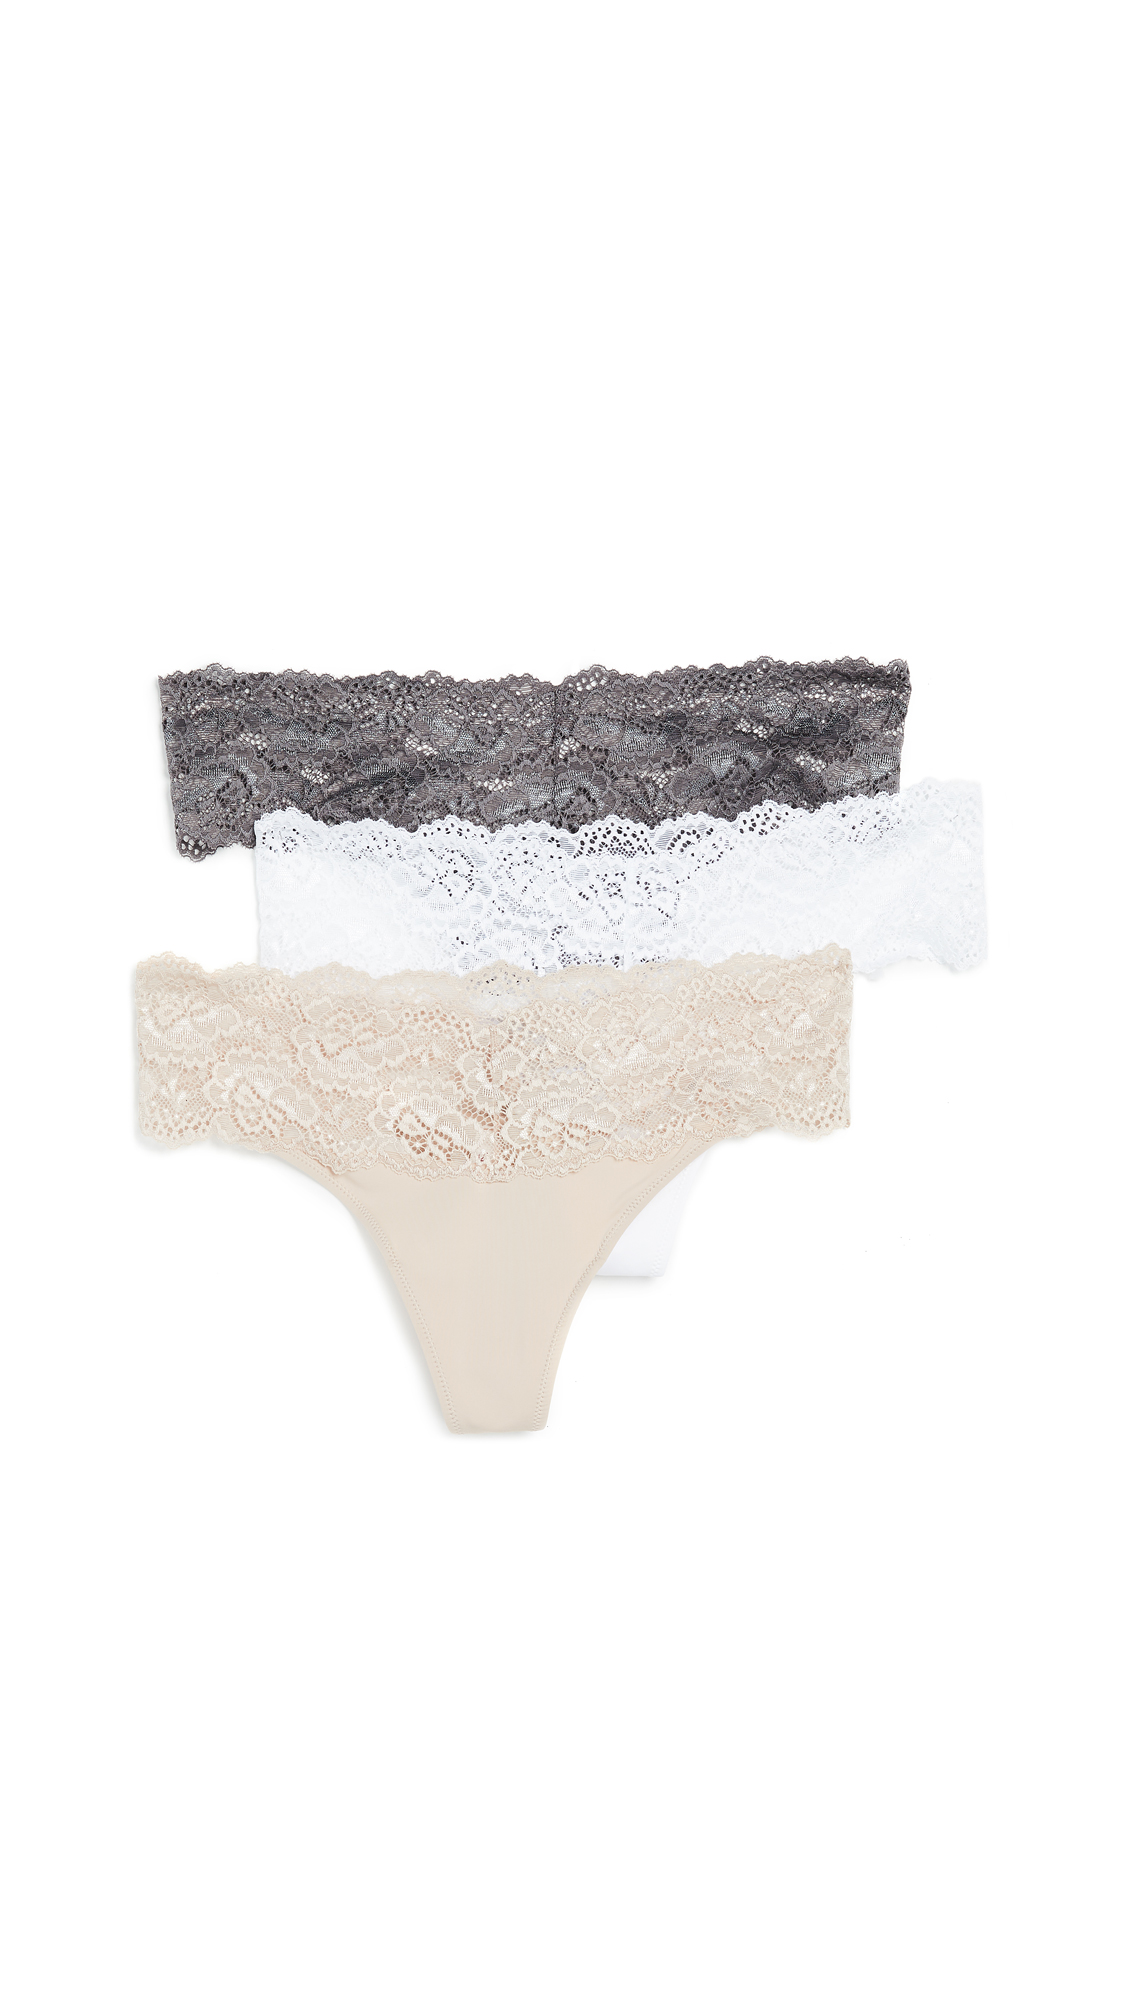 Skarlett Blue 3-Pack Goddess Thongs In Slate/Cashmere/White